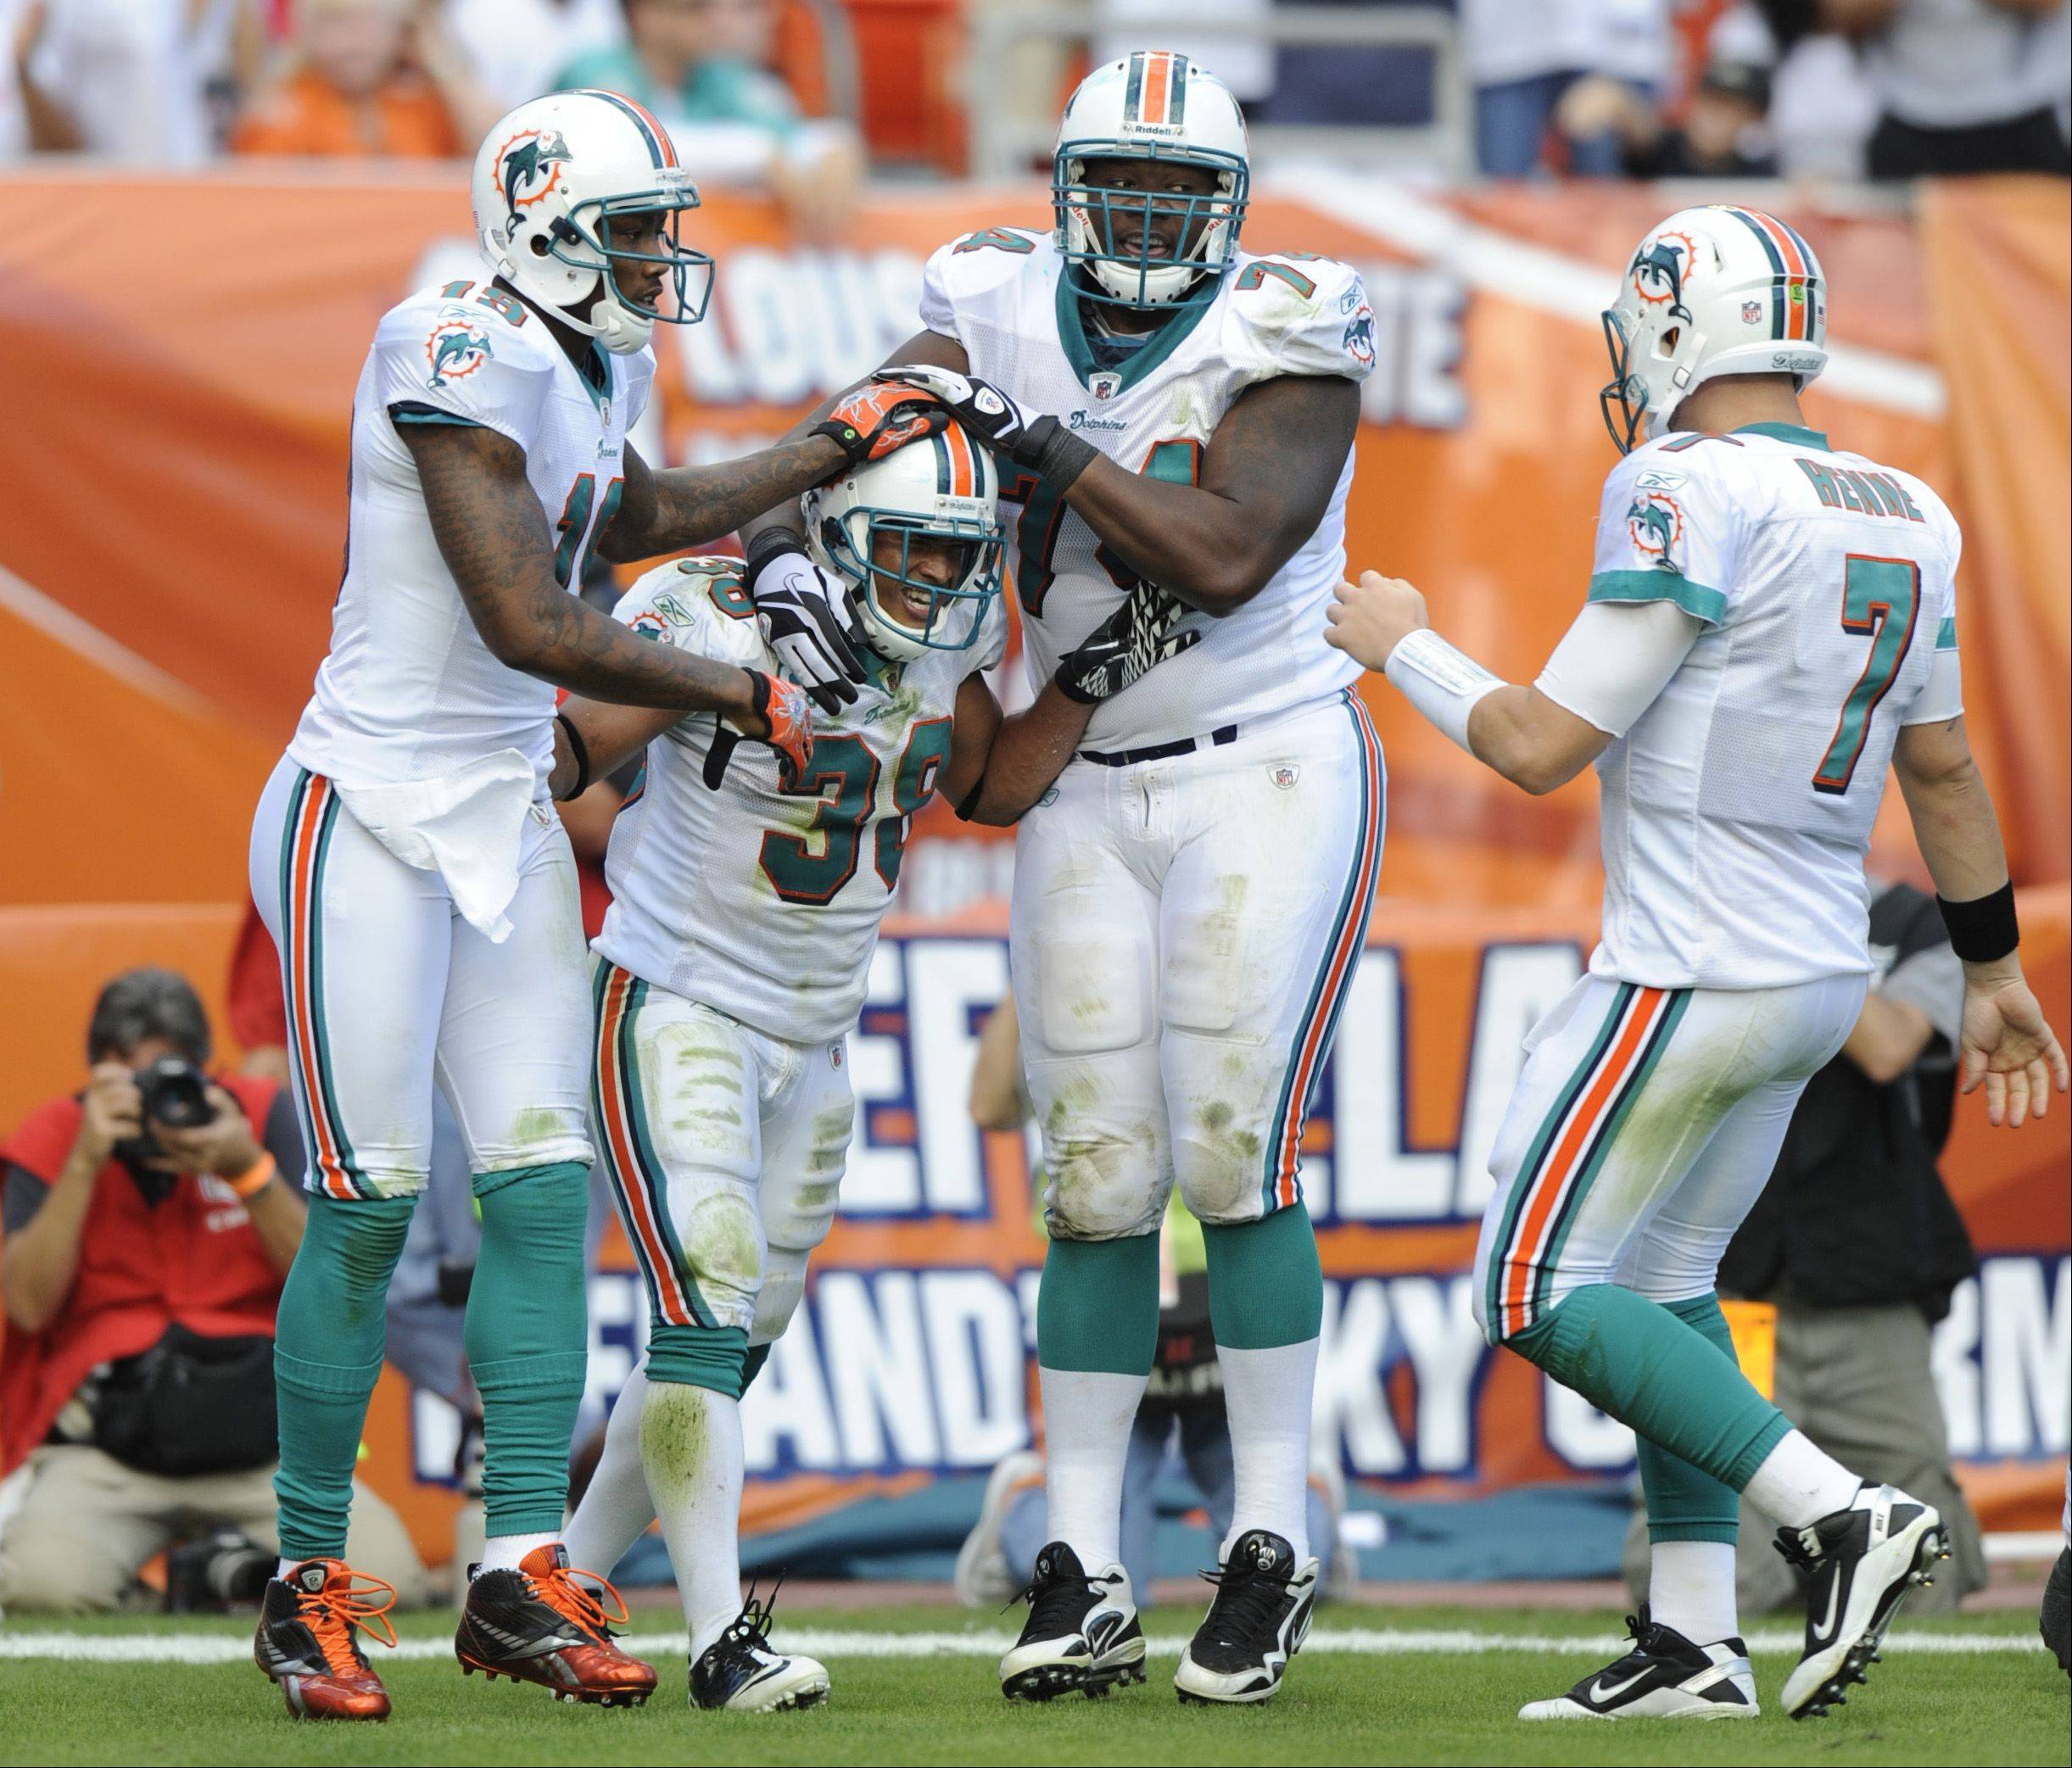 Miami Dolphins running back Patrick Cobbs (38) celebrates with wide receiver Brandon Marshall, left, guard John Jerry, second from right, and quarterback Chad Henne, right, after Cobbs scored a touchdown during the second half of an NFL football game against the Tennessee Titans on Sunday, Nov. 14, 2010 in Miami.